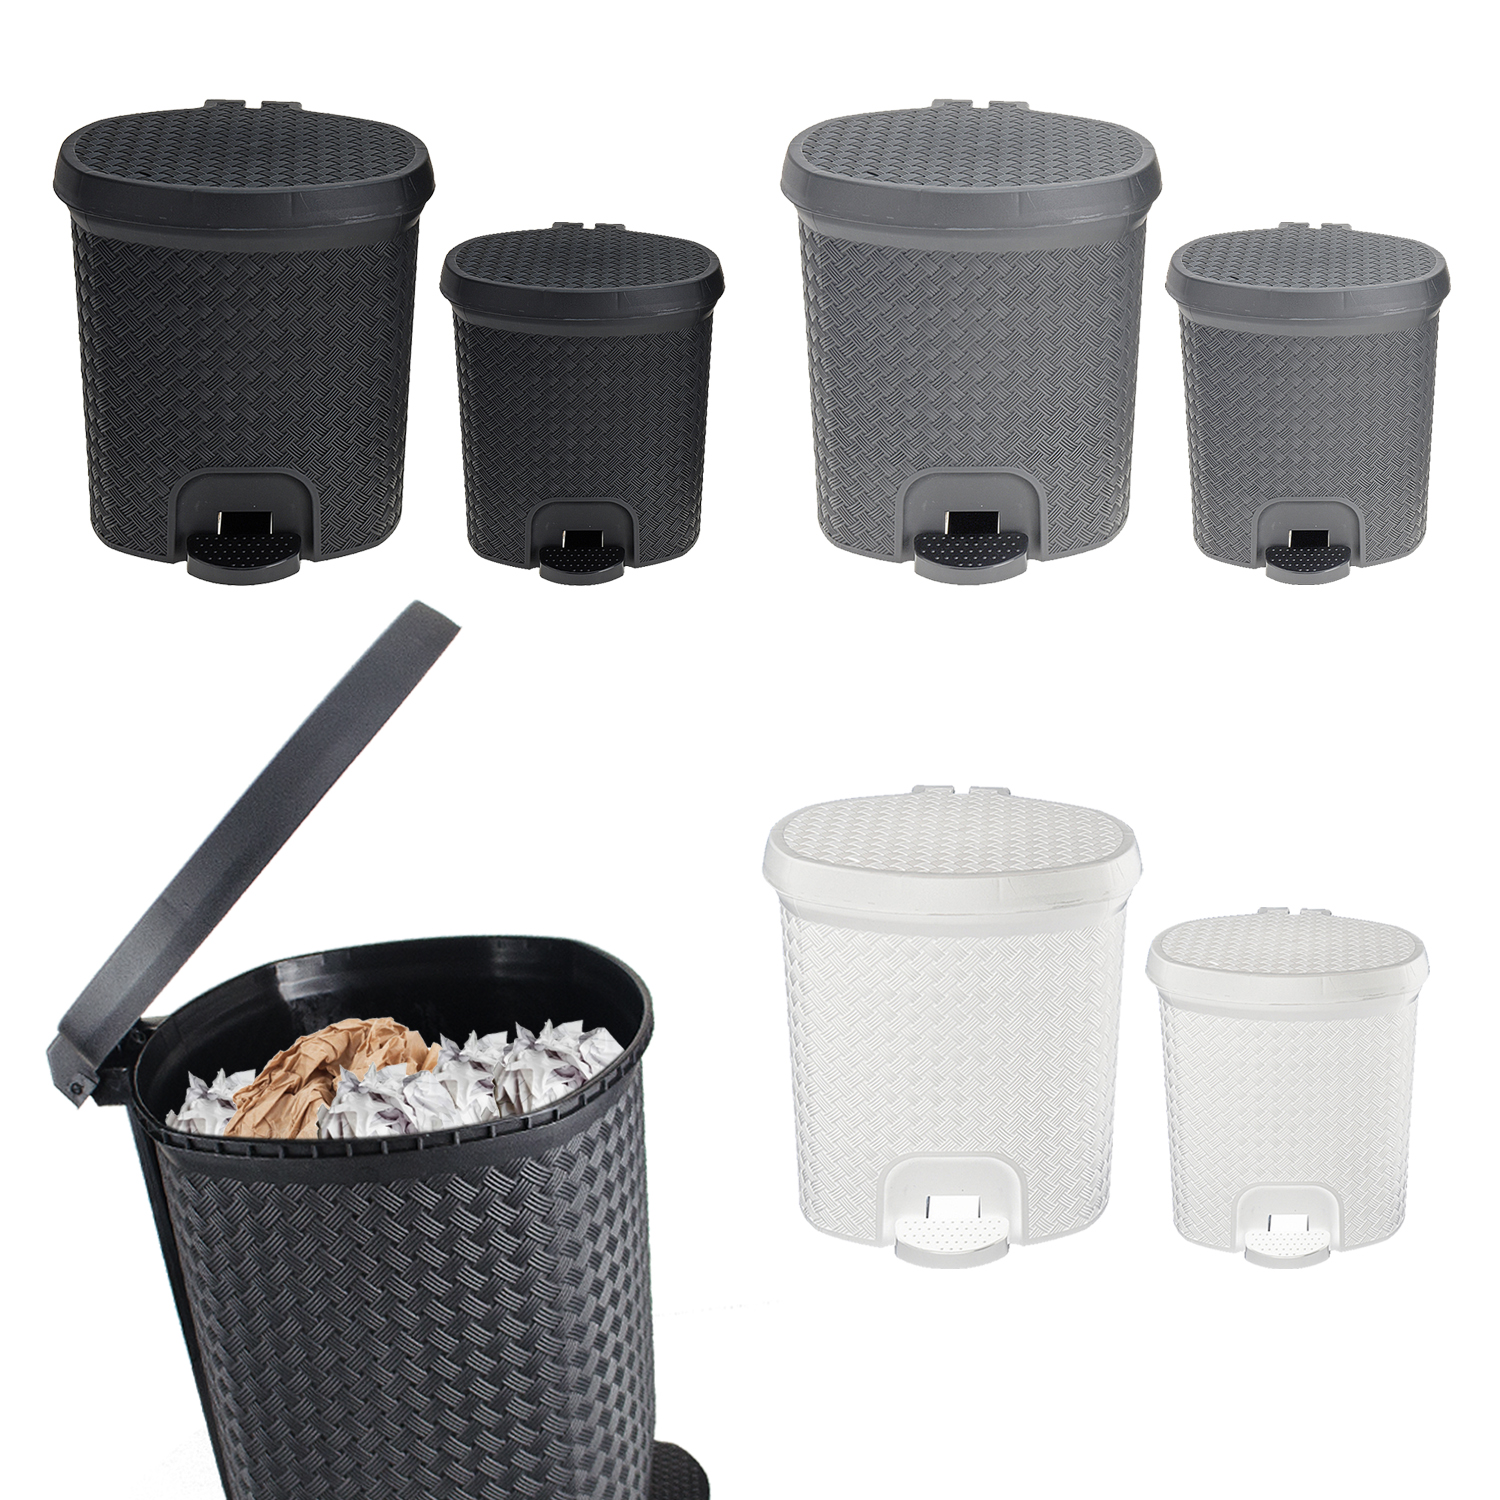 2 Piece Plastic Pedal Bin Waste FOR Bathroom OR Kitchen Rattan 3L ...